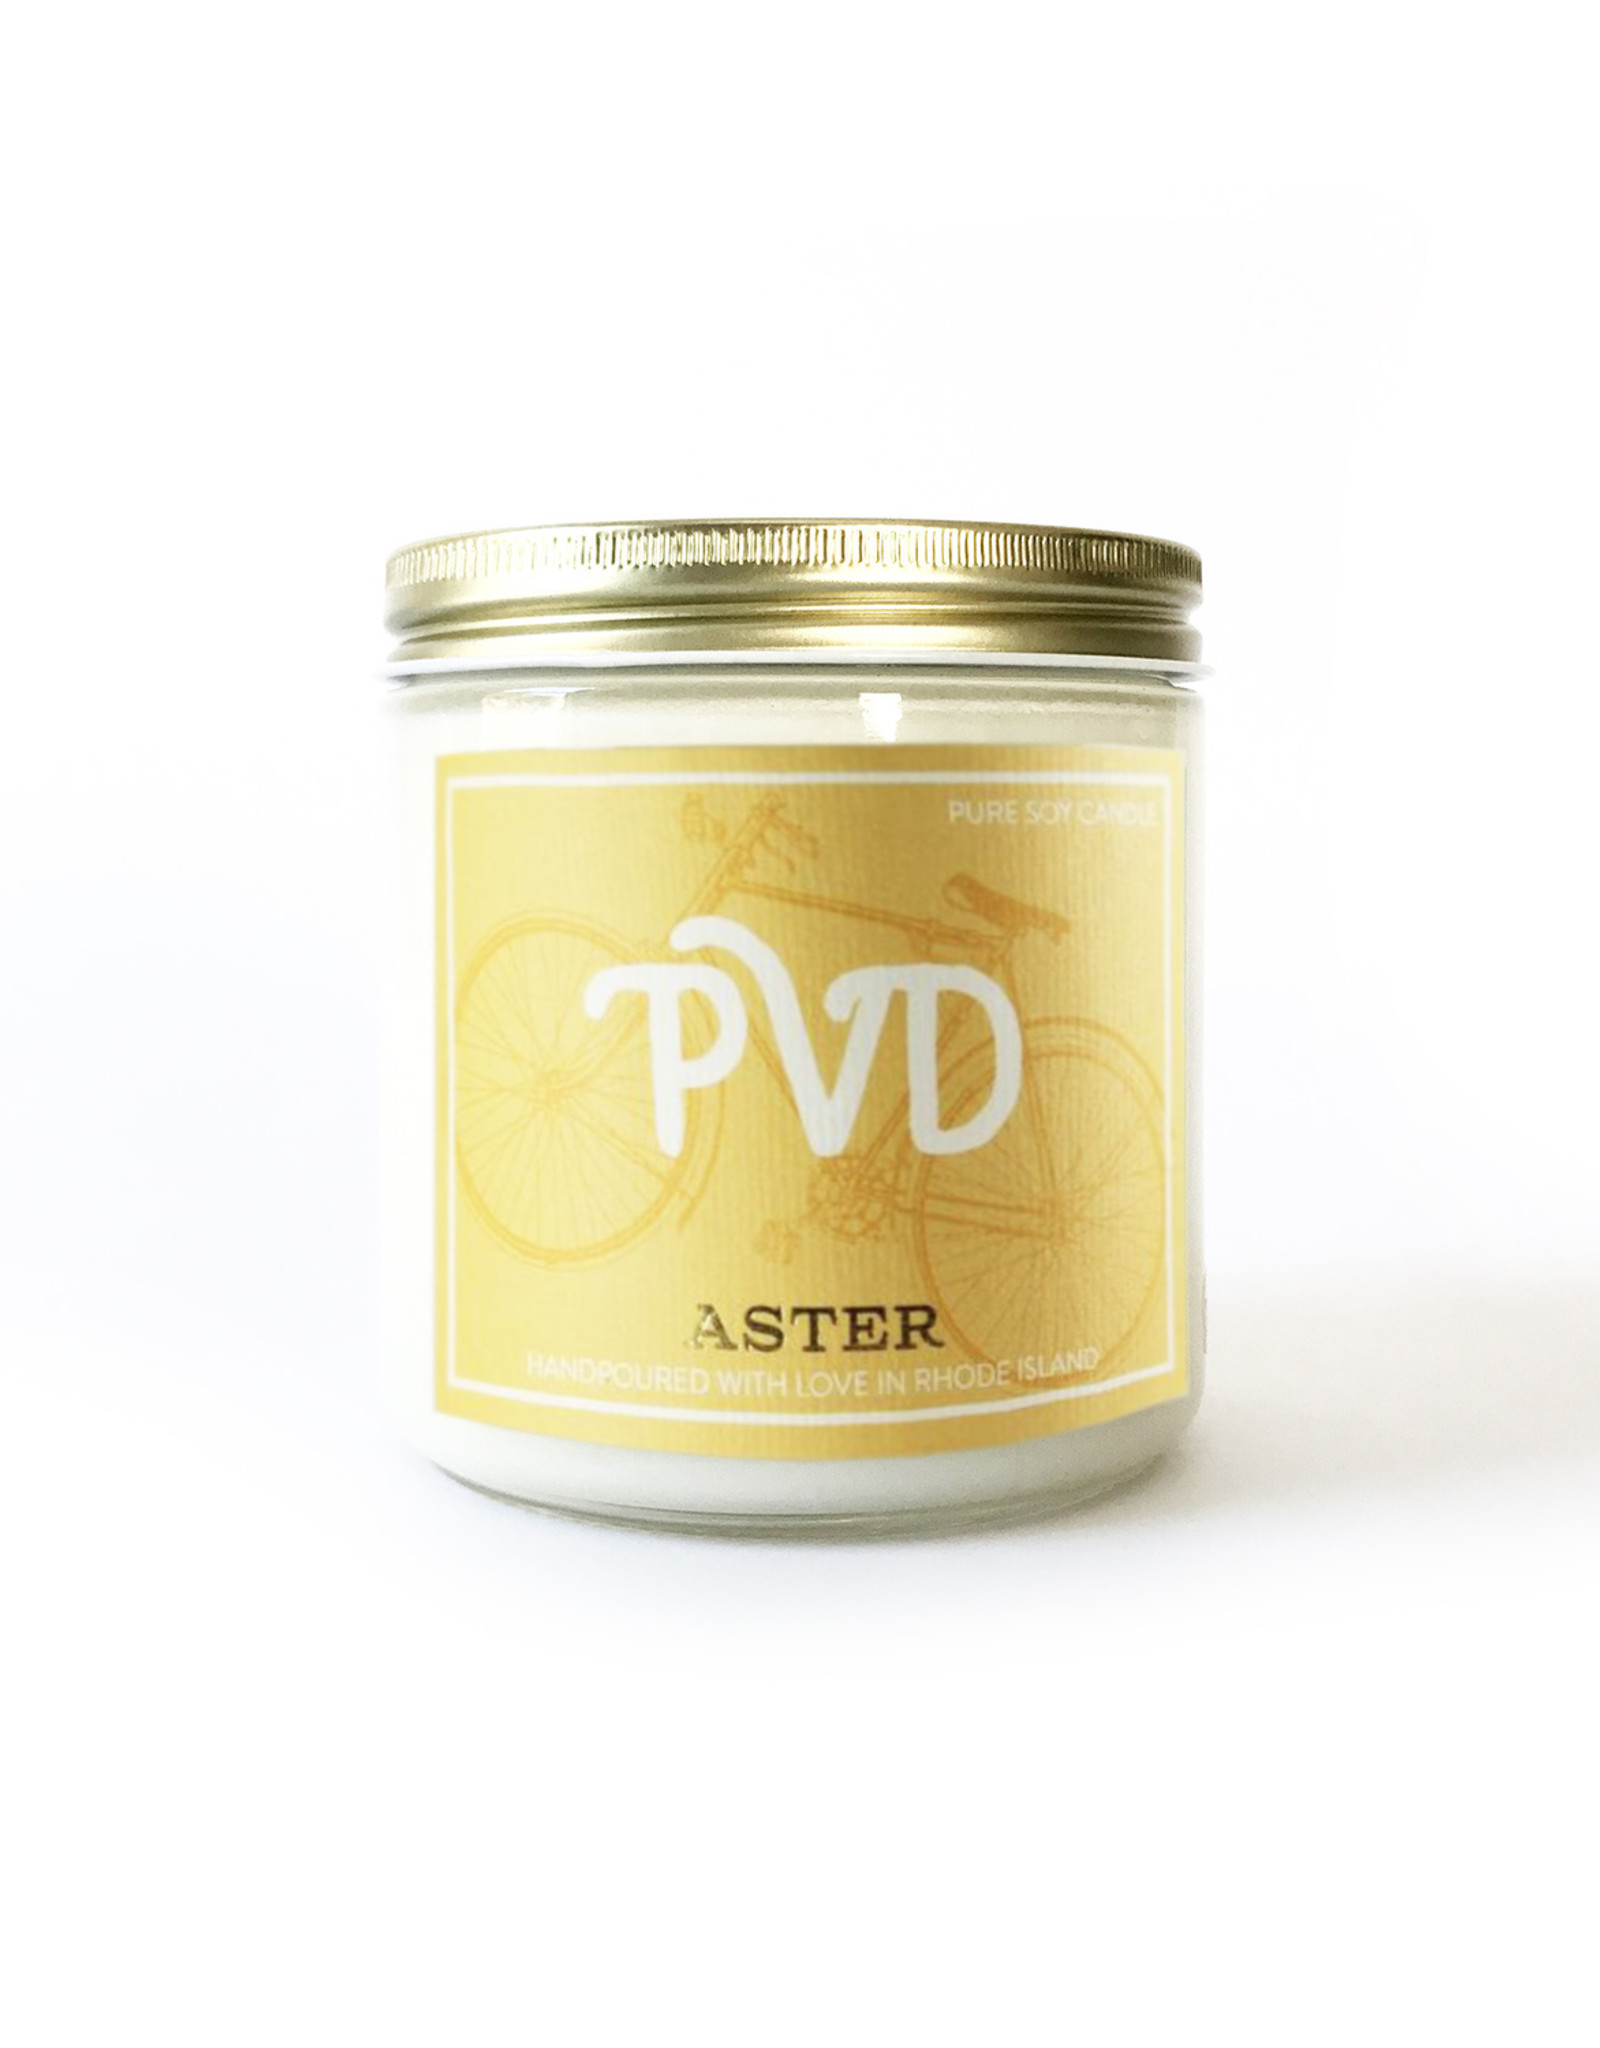 Aster Aster Candle Glass Jars